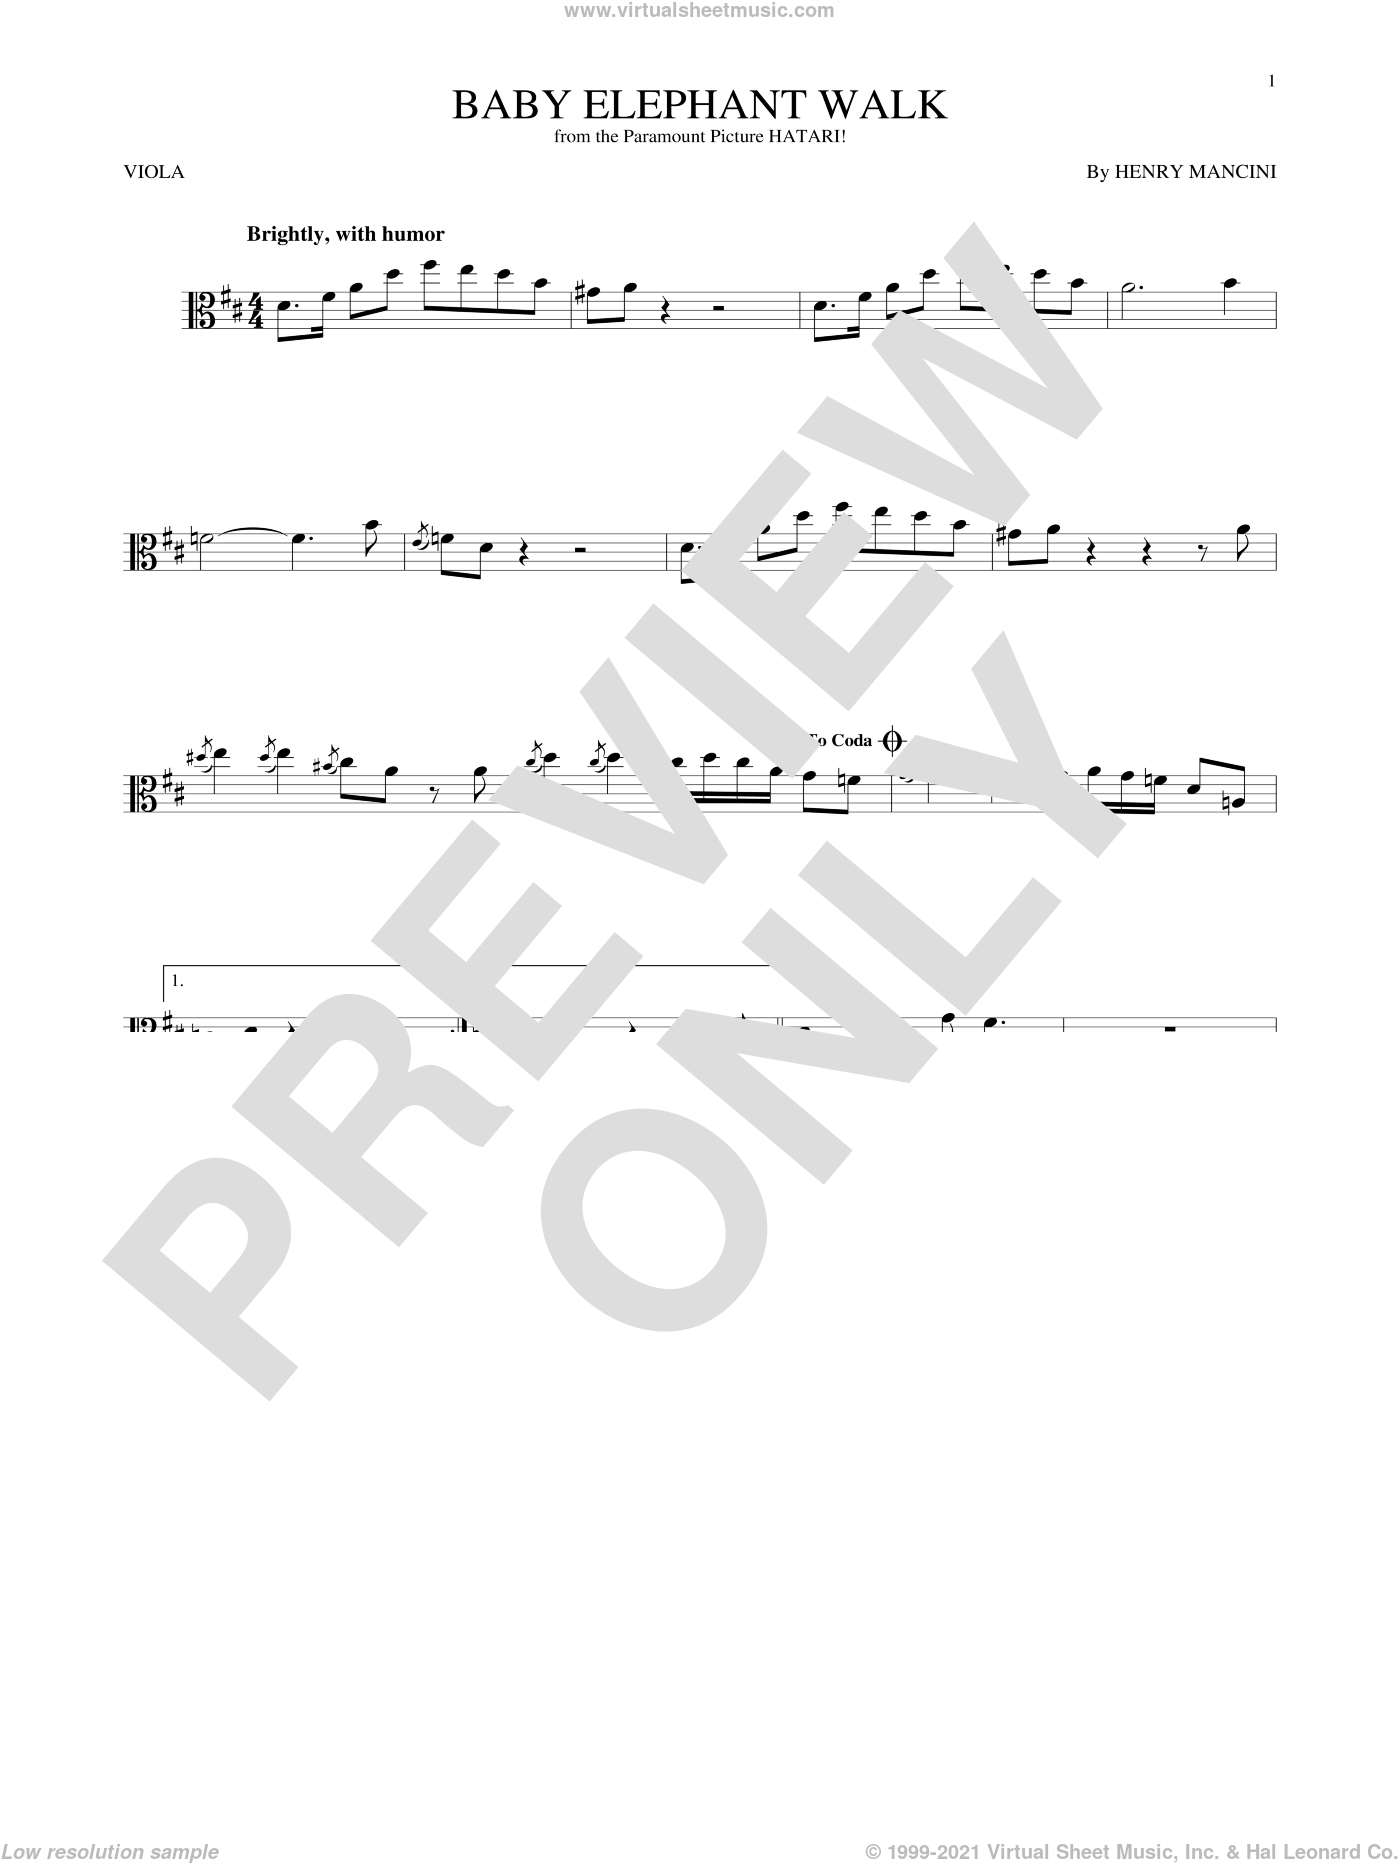 Baby Elephant Walk sheet music for viola solo by Henry Mancini, Lawrence Welk and Hal David, intermediate skill level